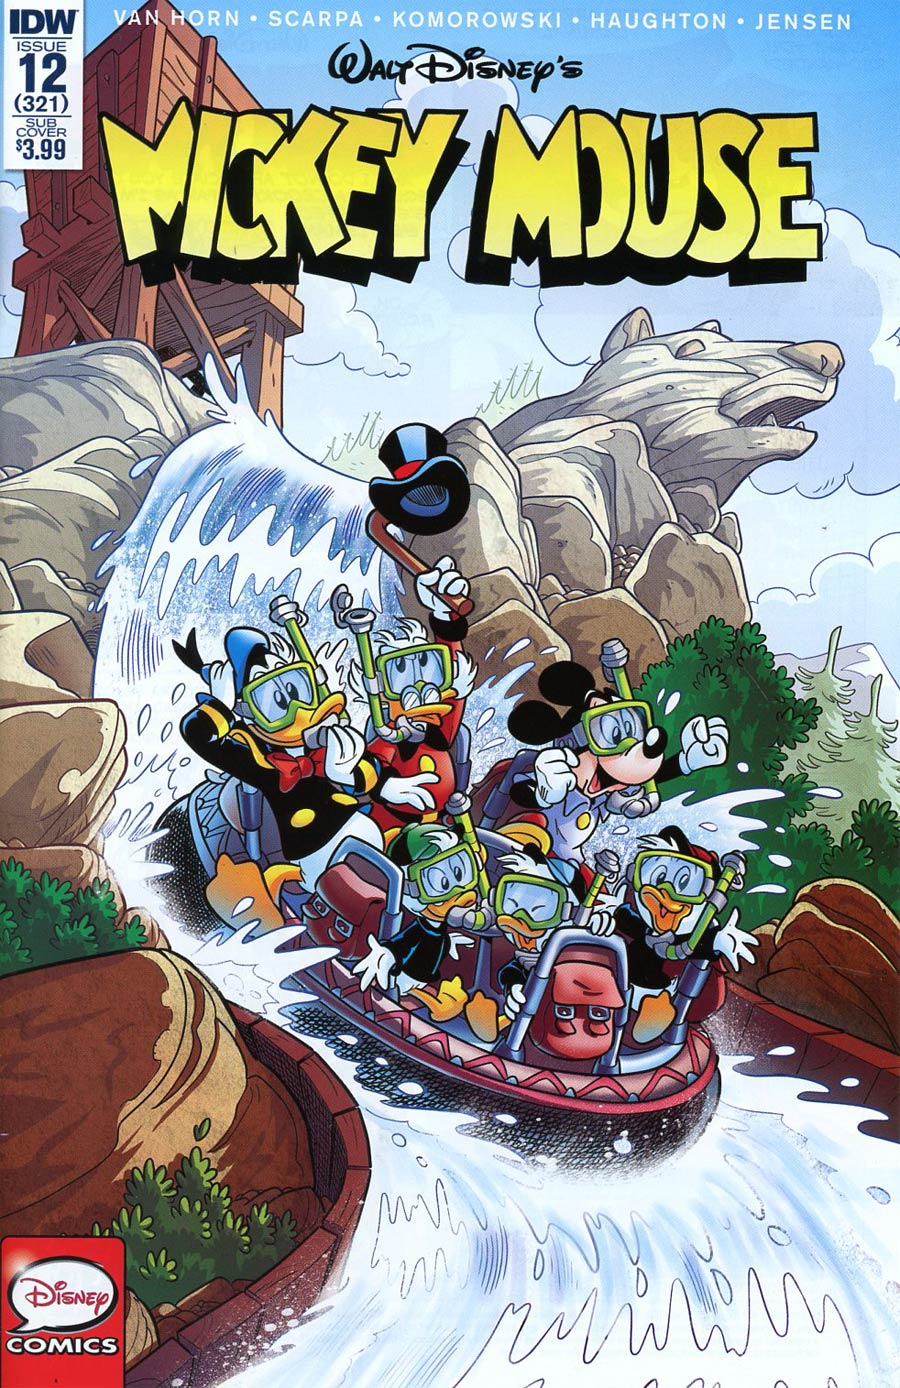 Mickey Mouse Vol 2 #12 Cover B Variant Lucas Usai Subscription Cover